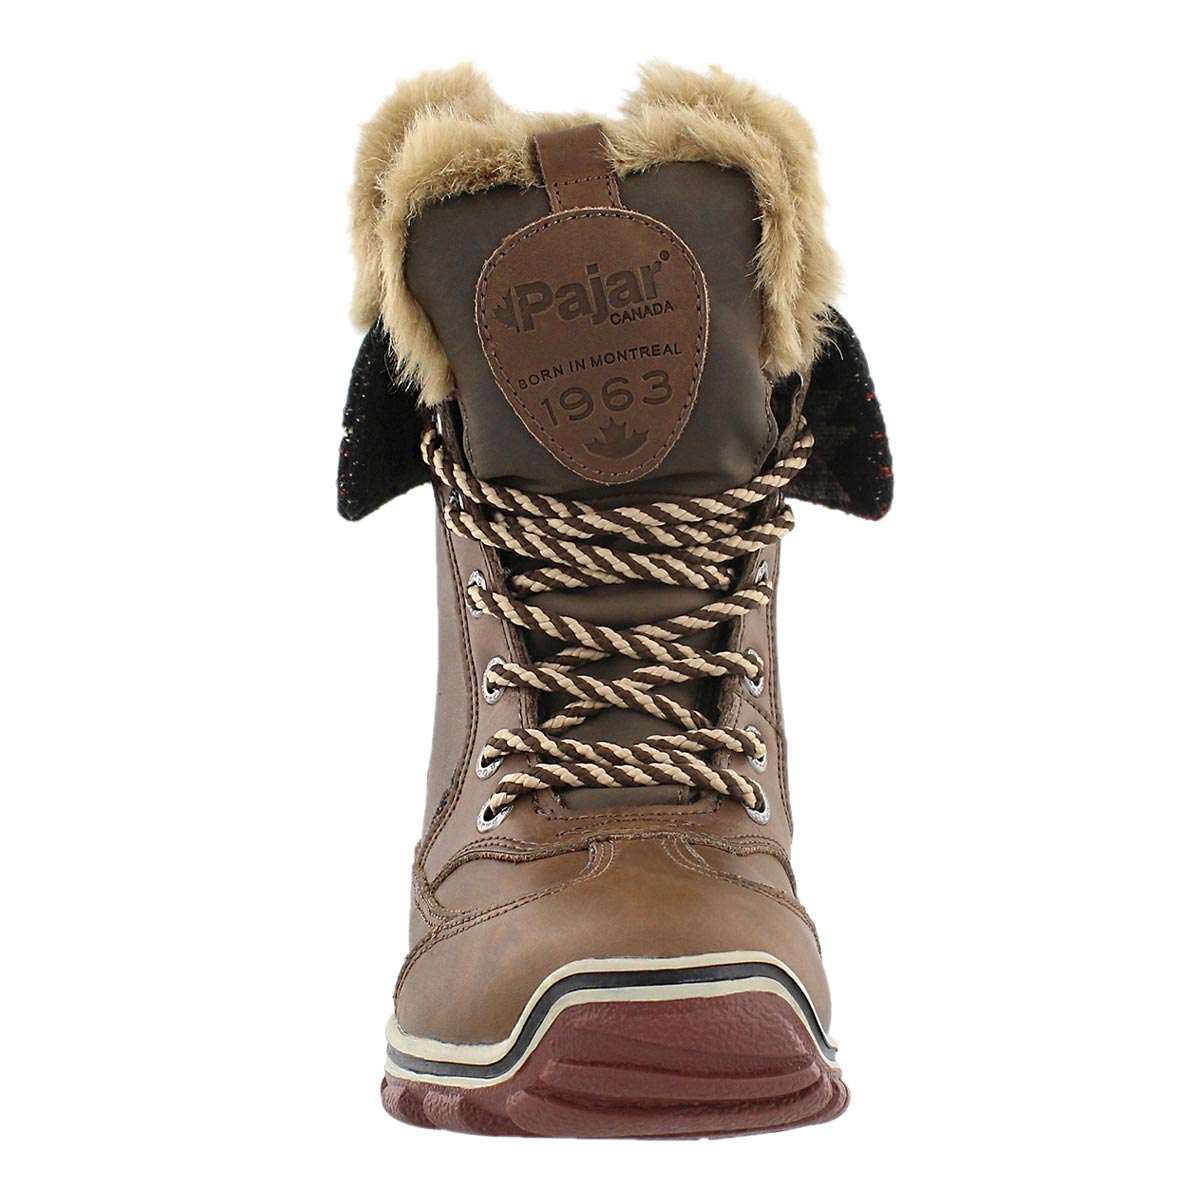 Lds Alice Native brn lace up winter boot